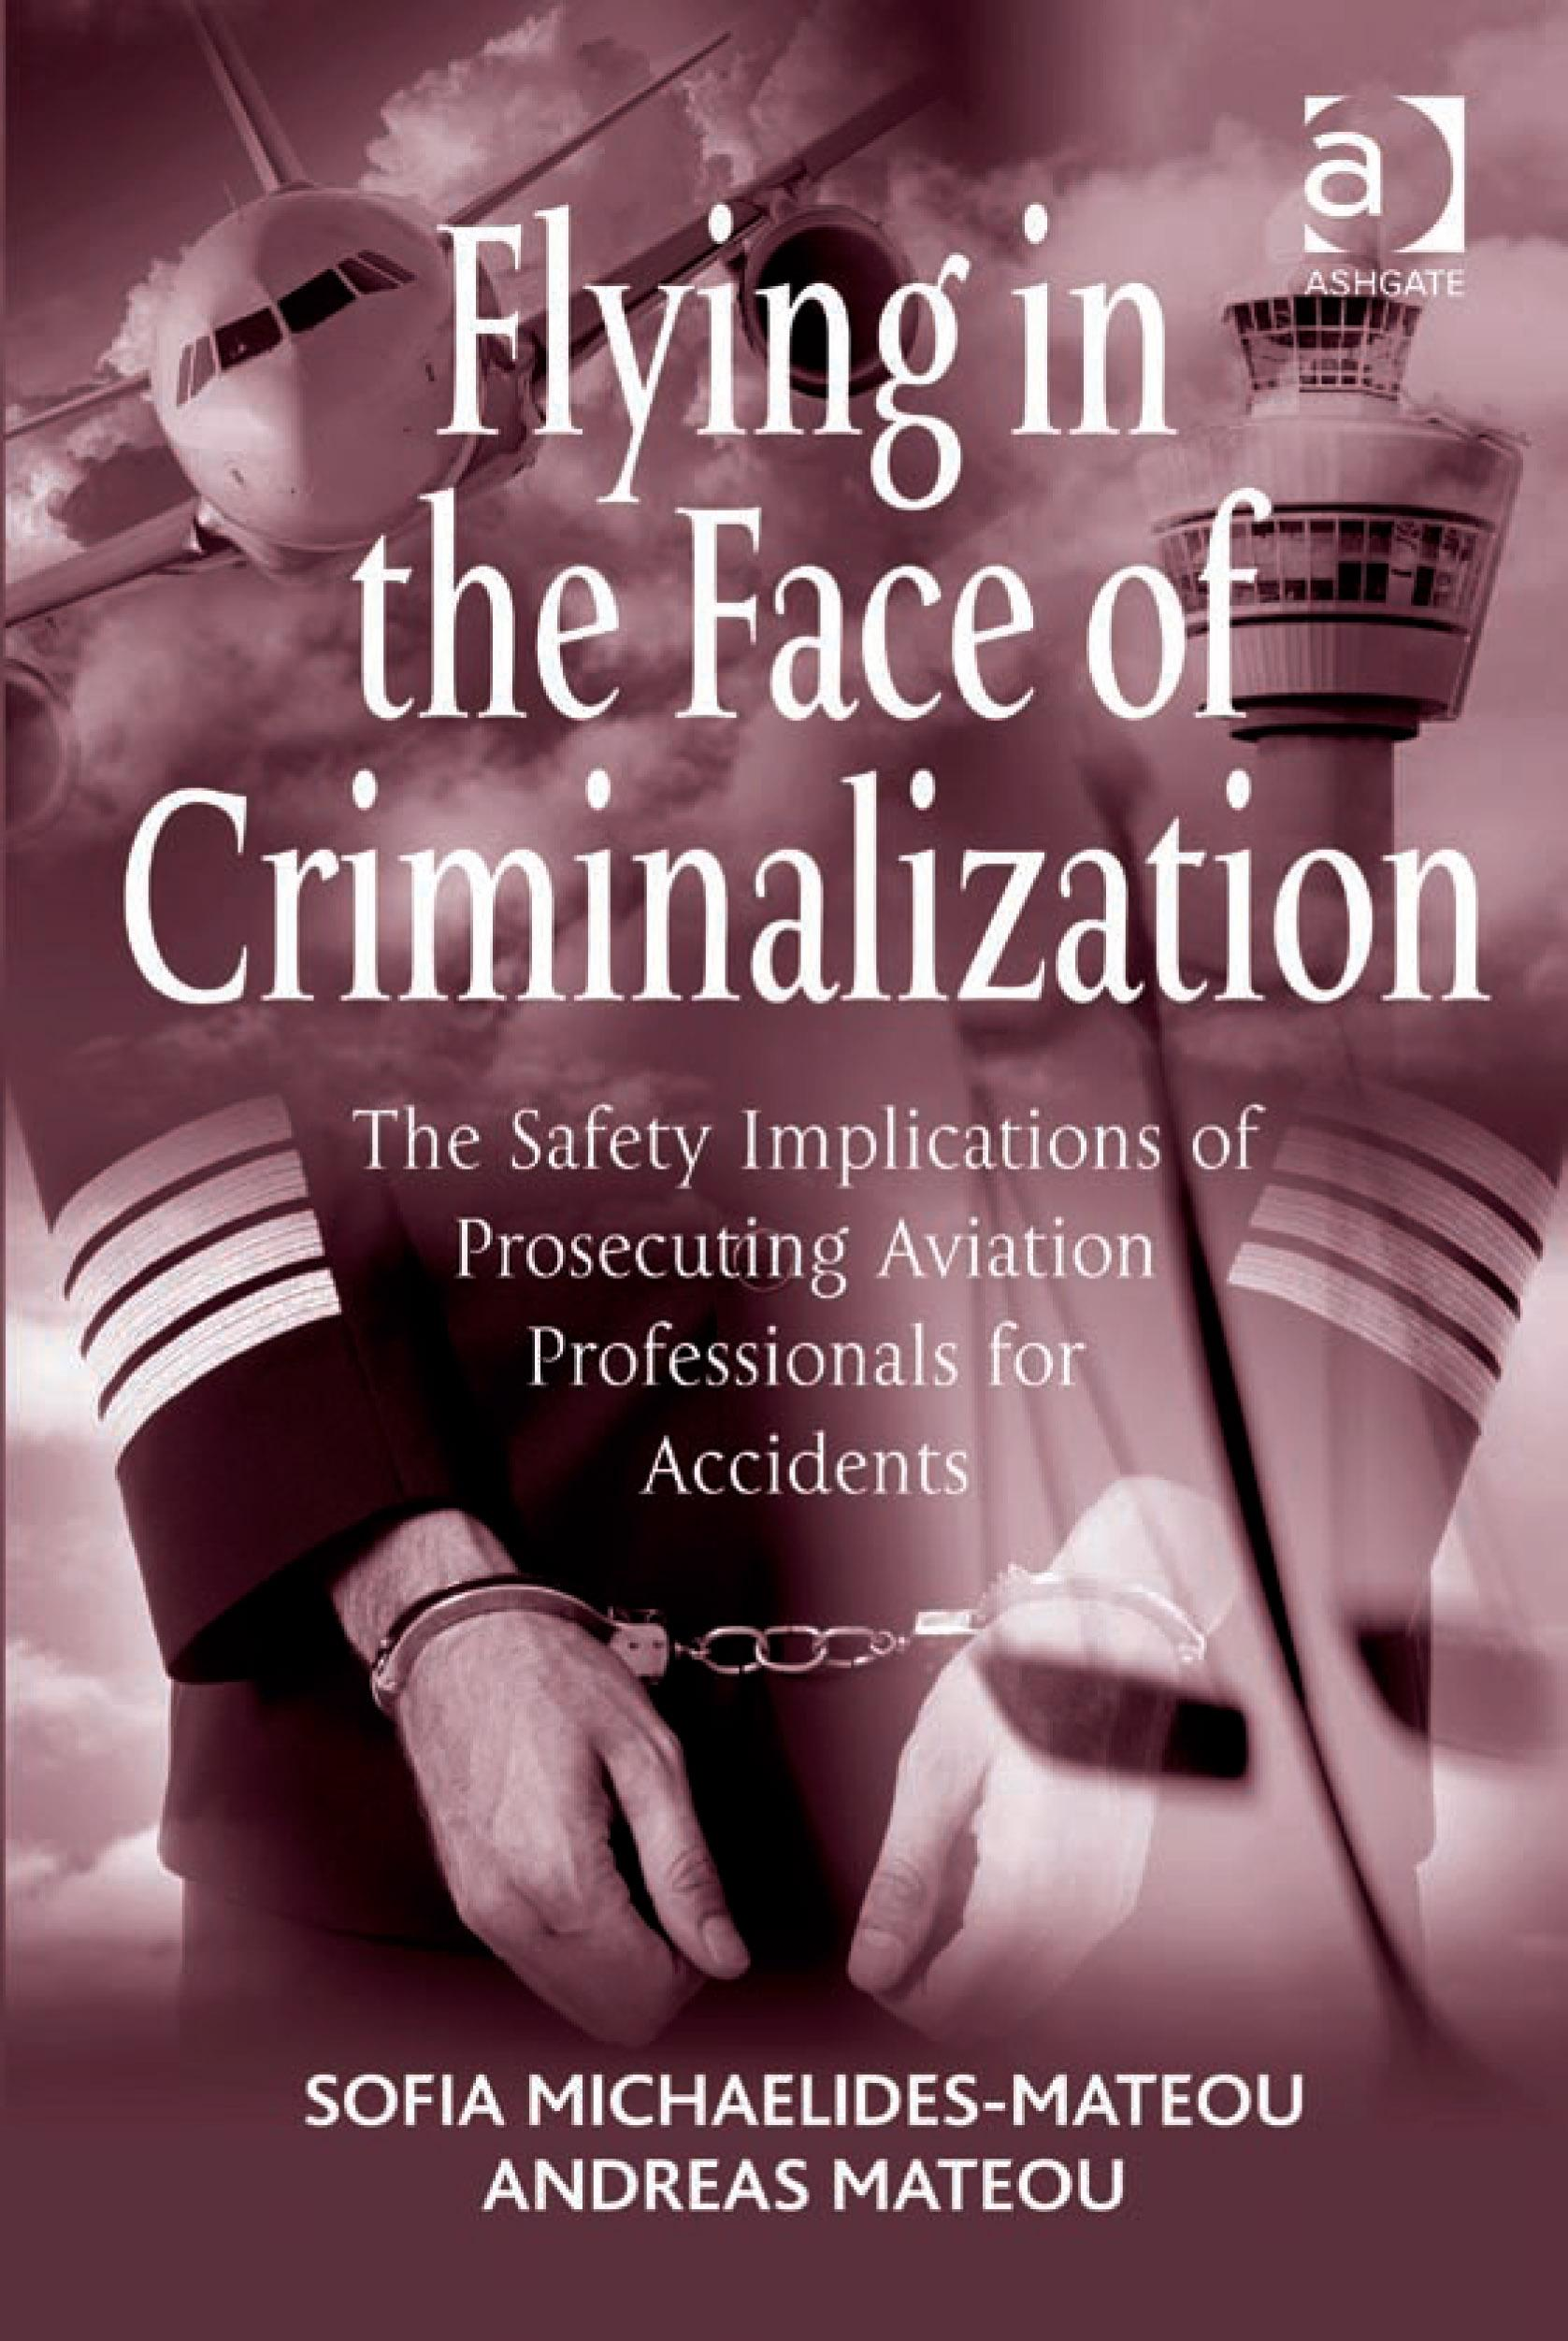 Flying in the Face of Criminalization: The Safety Implications of Prosecuting Aviation Professionals for Accidents EB9781409407683